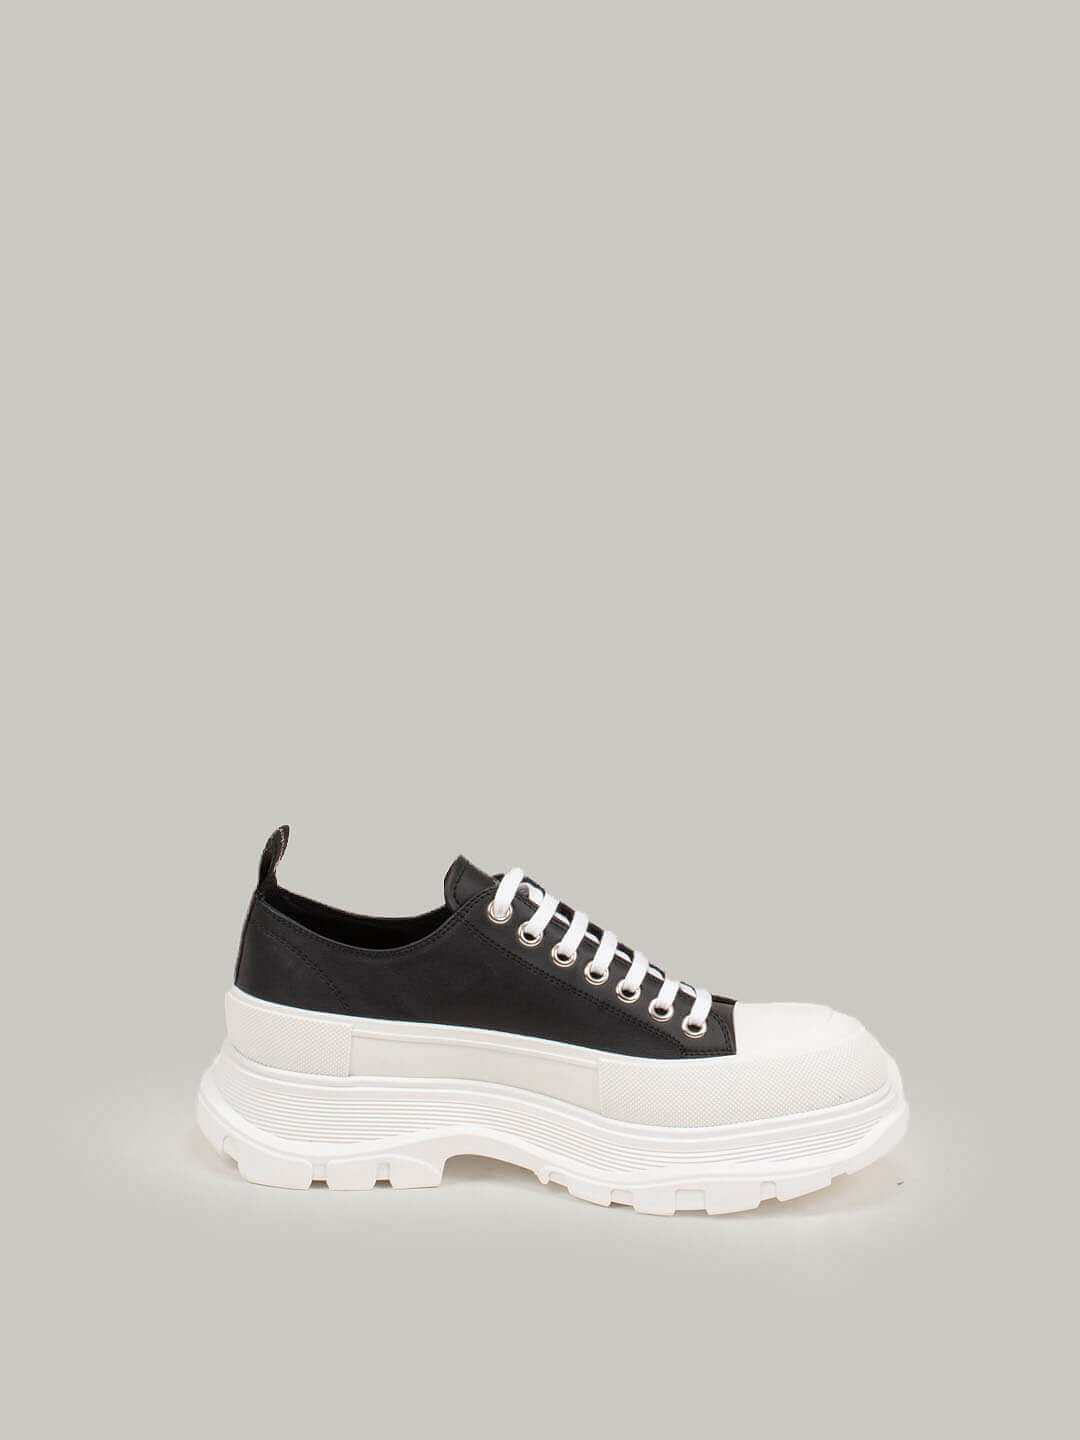 black Low Top Lace Up Sneaker white Sole